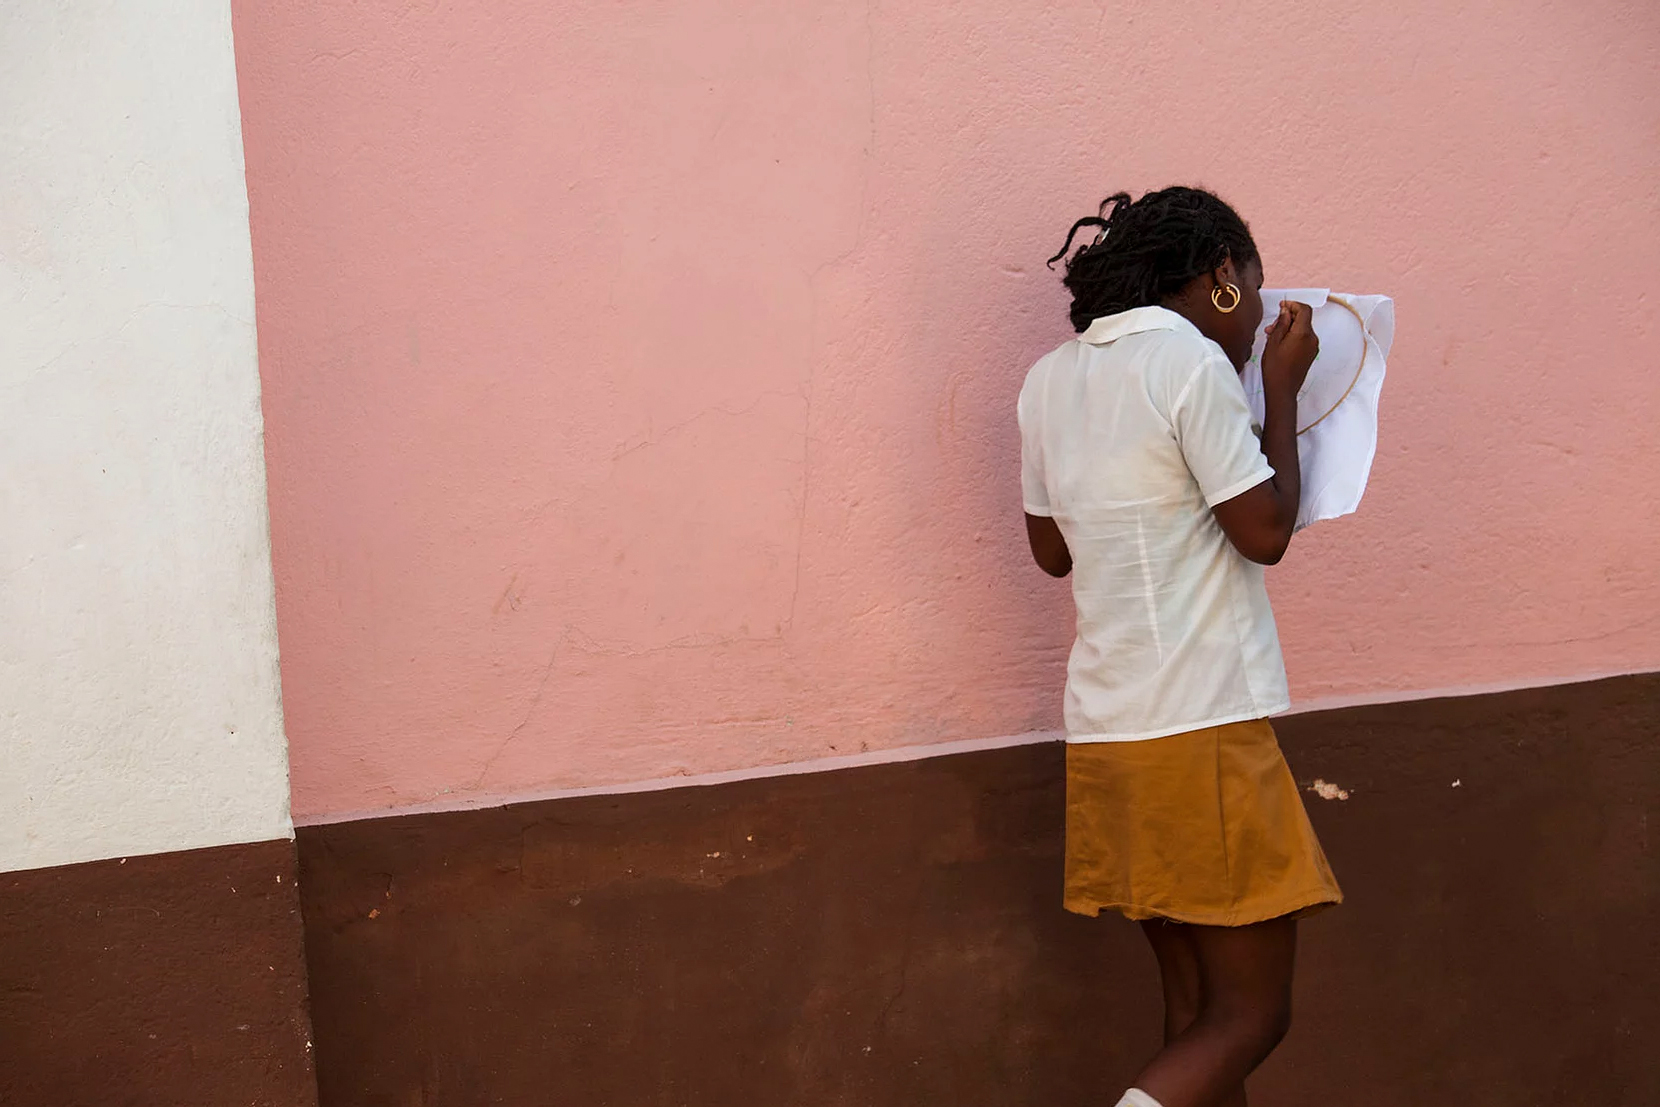 Color photo by Alex Almeida, girl, Cuba.